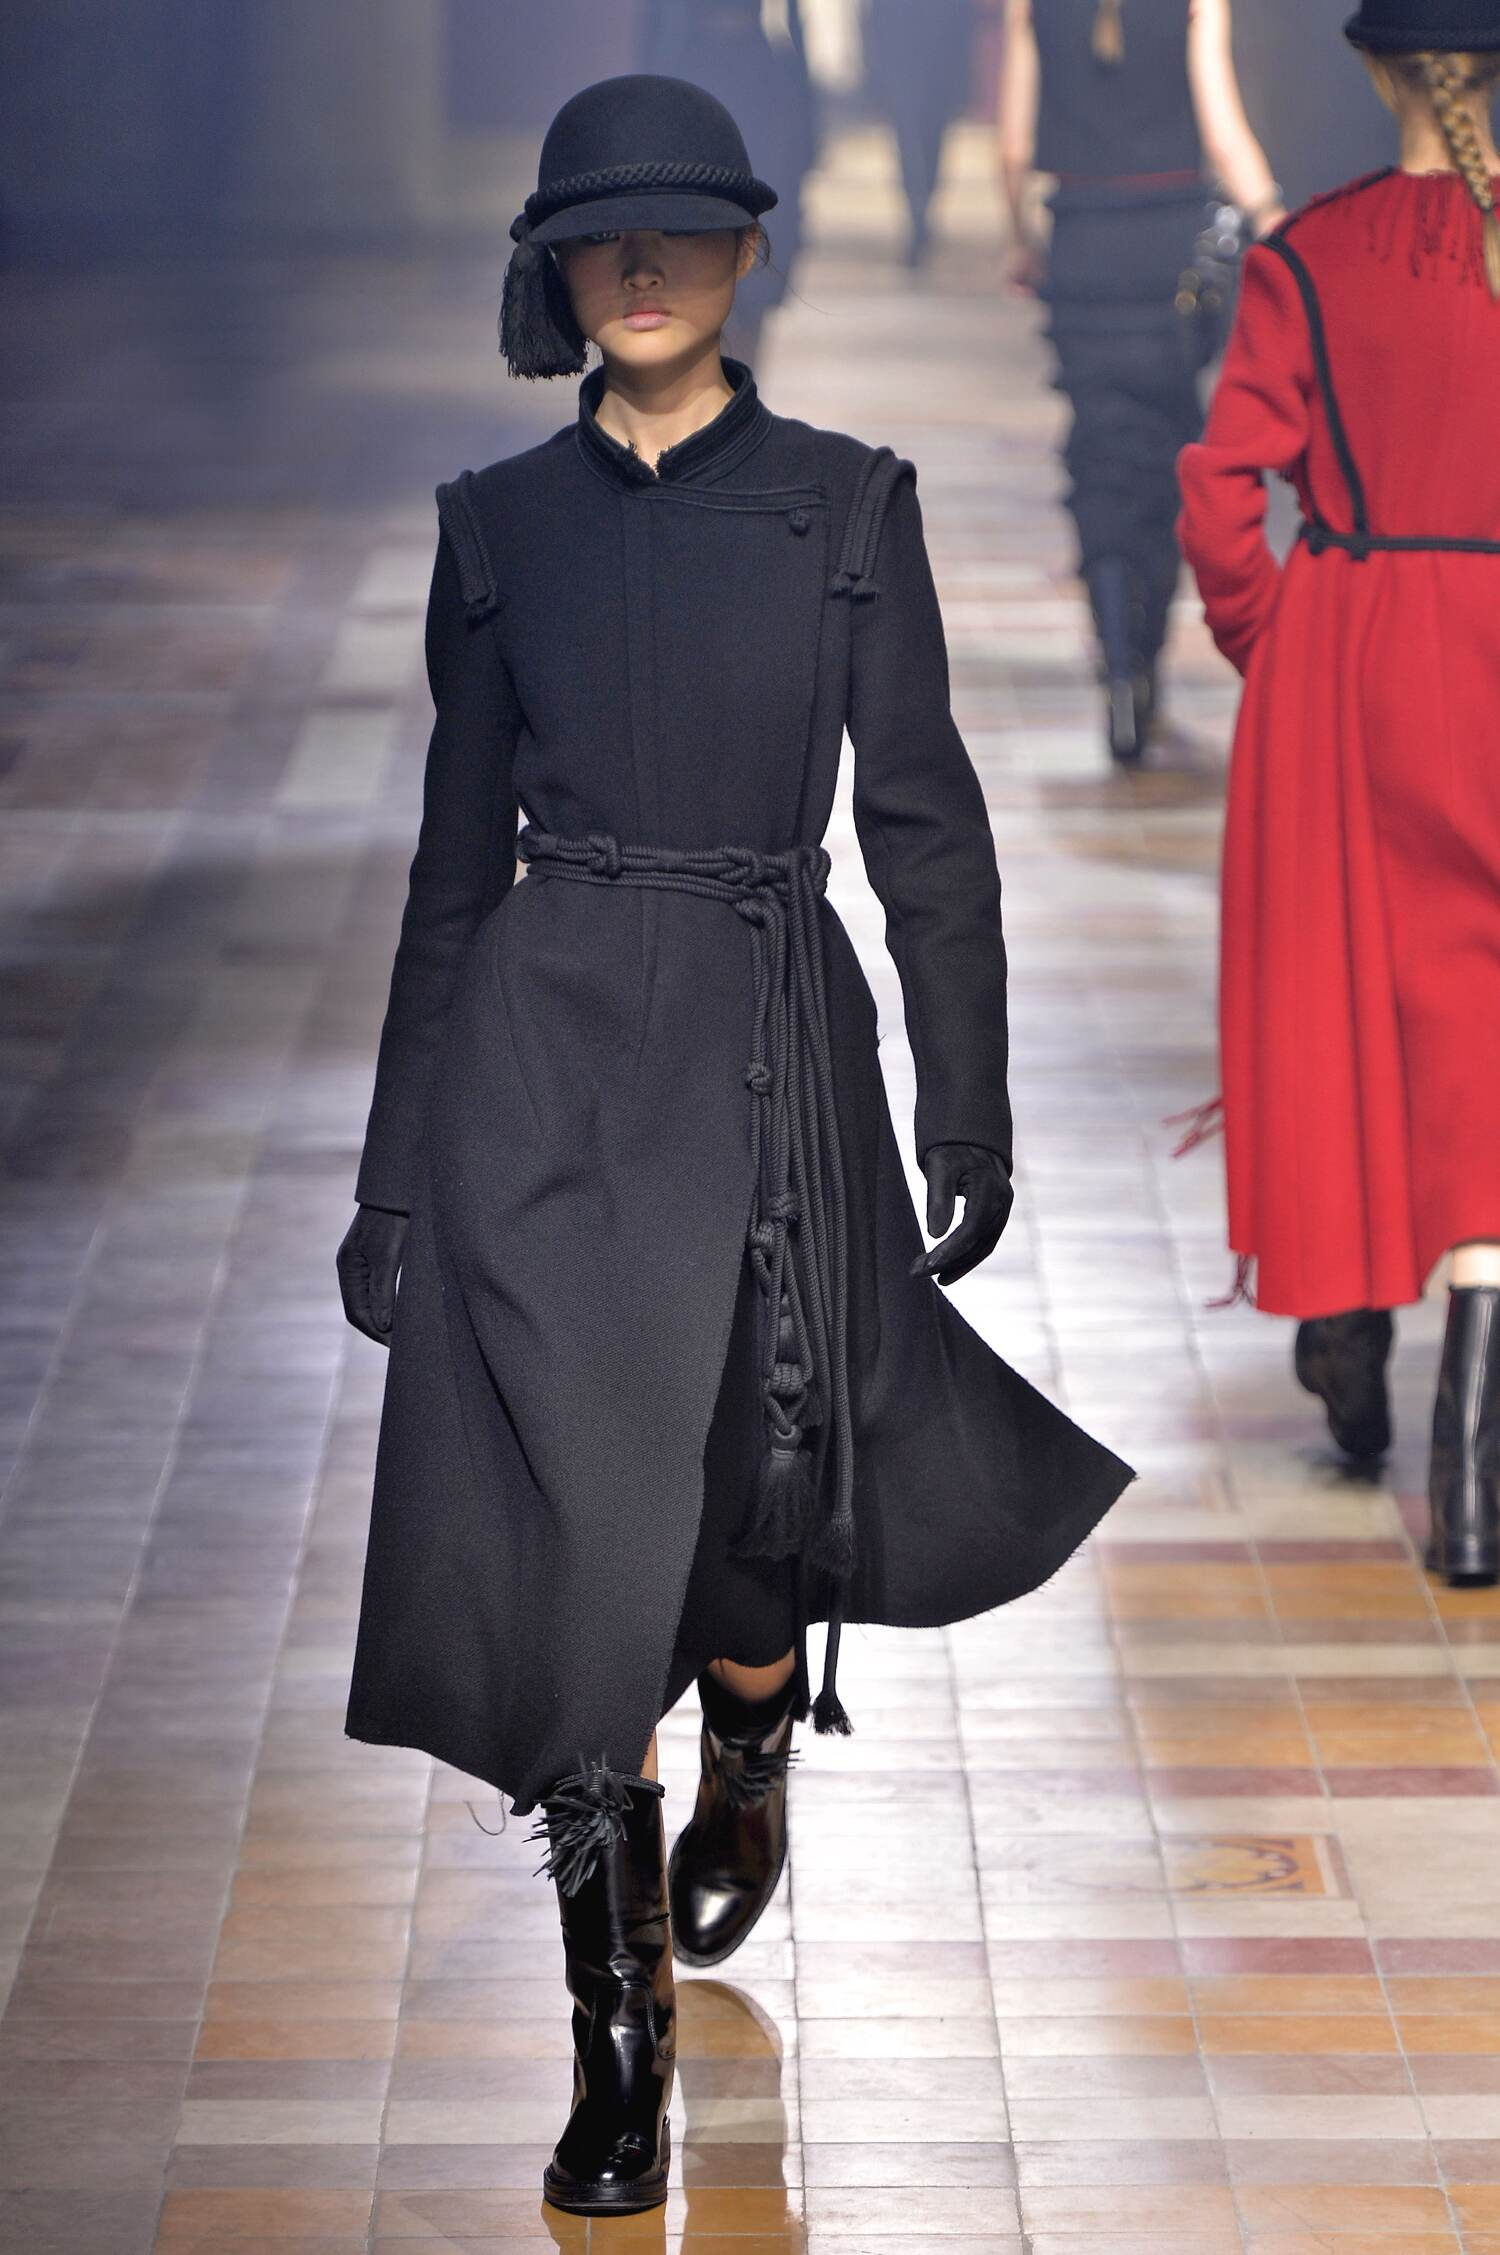 Lanvin Fall Winter 2015 16 Womenswear Collection Paris Fashion Week Fashion Show